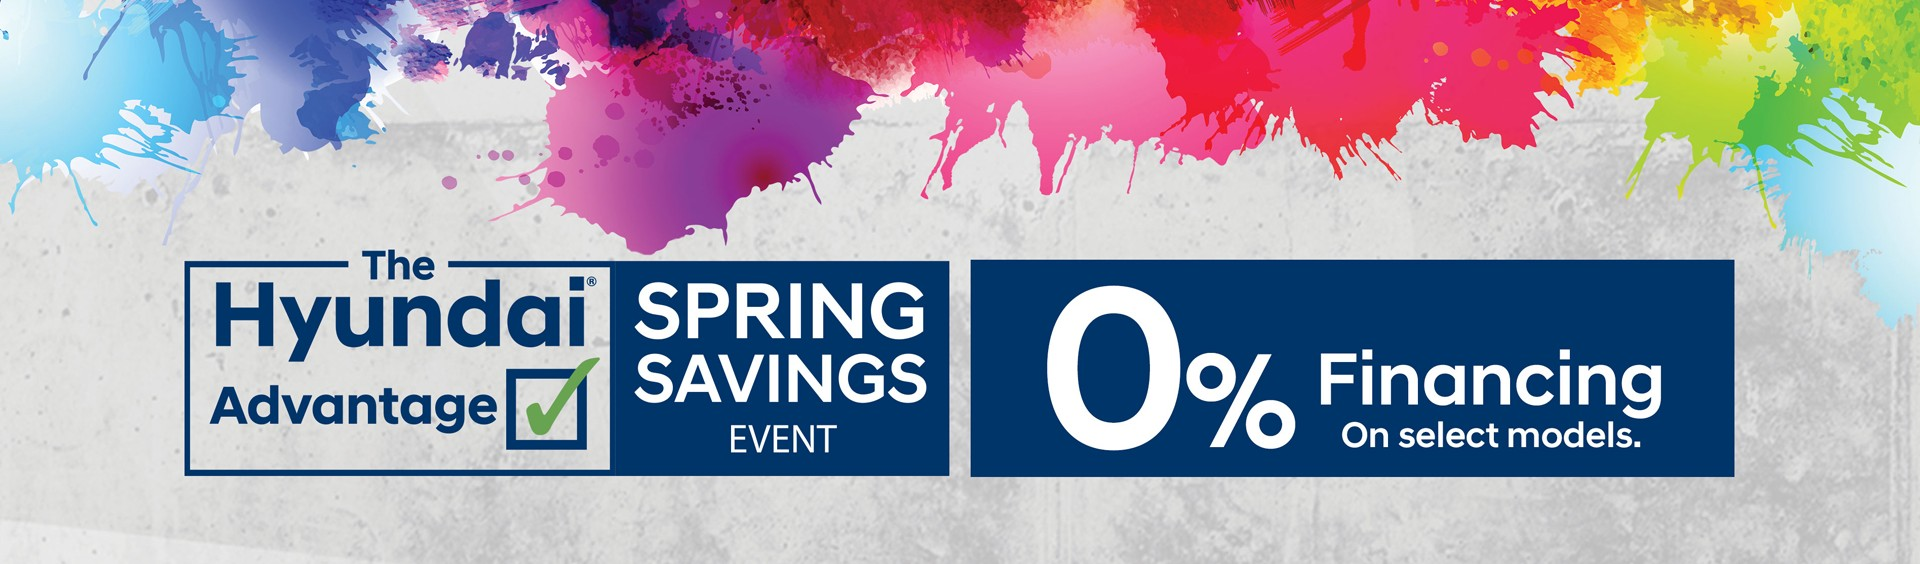 Spring Saving Event